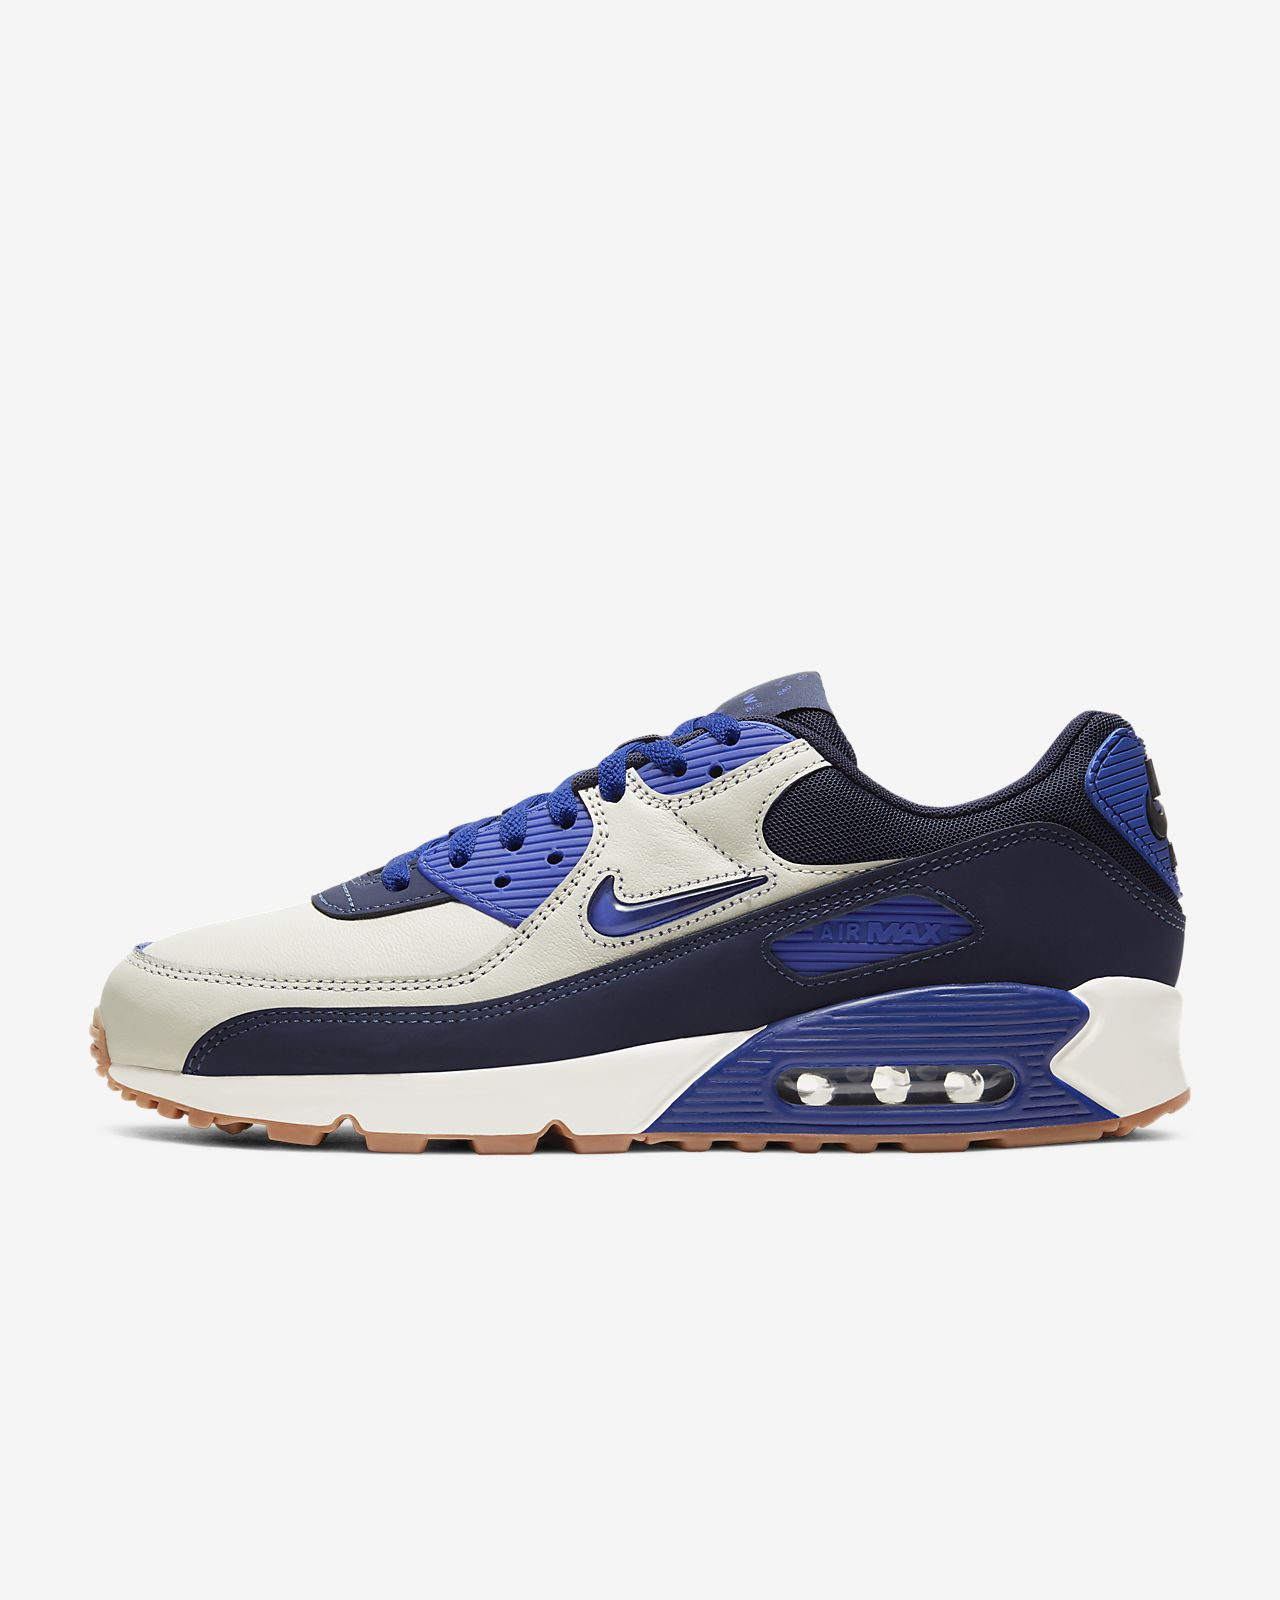 Air Max 90 Premium Men's Shoe